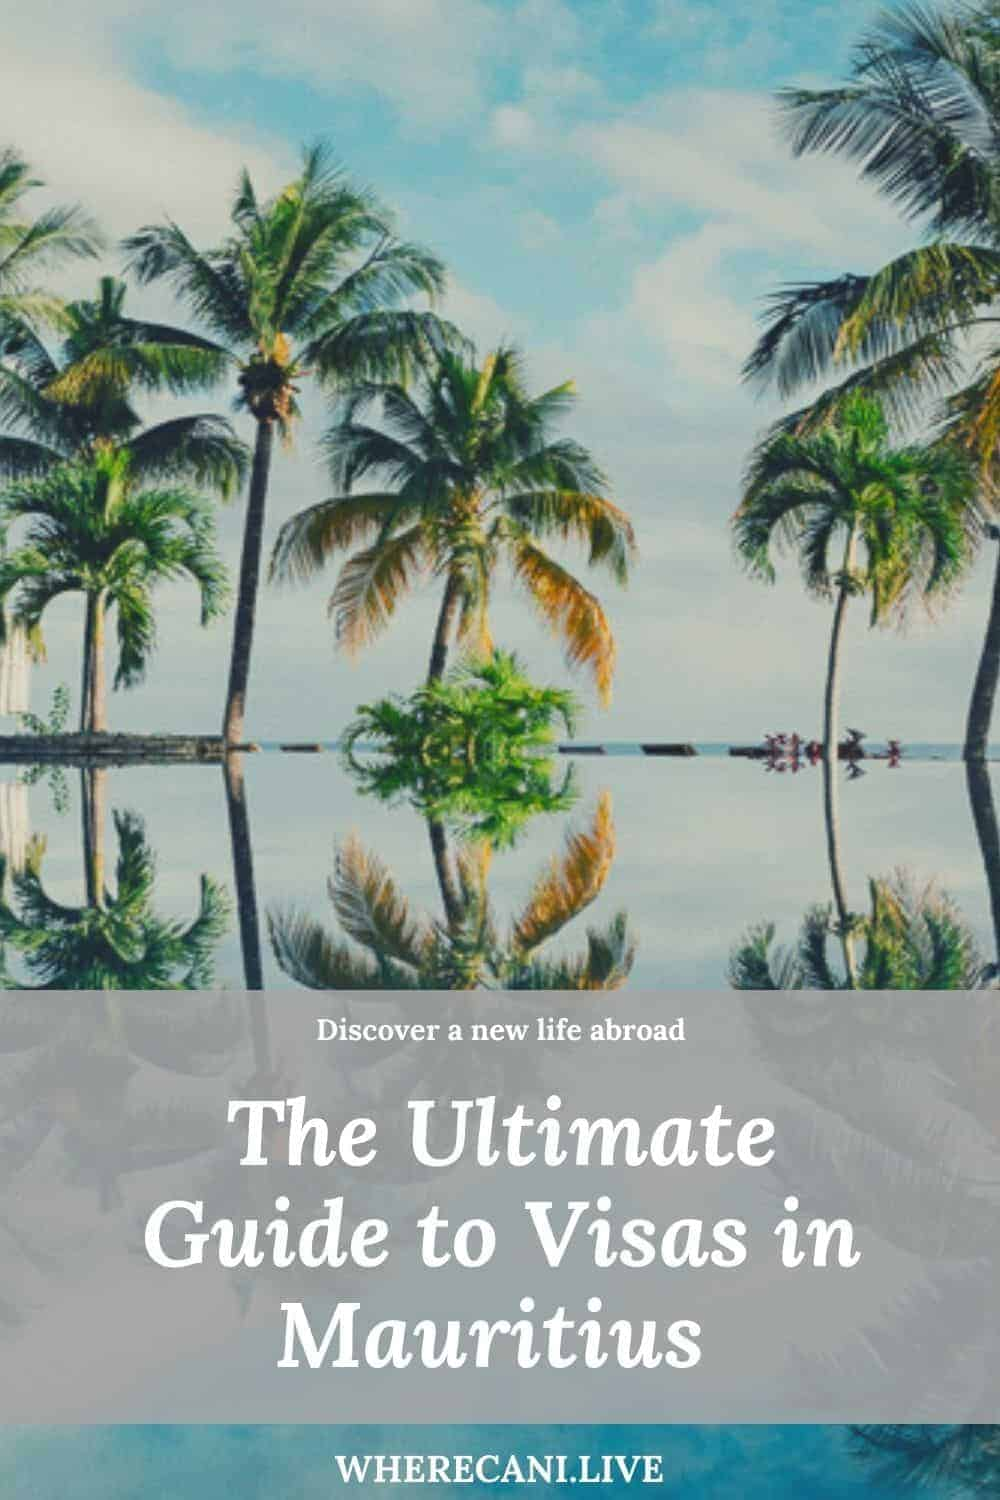 Mauritius attracts Expats from around the world. They come for the natural beauty and the relaxed lifestyle.  Here is the ultimate guide to which visas you could get. #mauritius #visaguide #visas #expat #expatlife via @wherecanilive